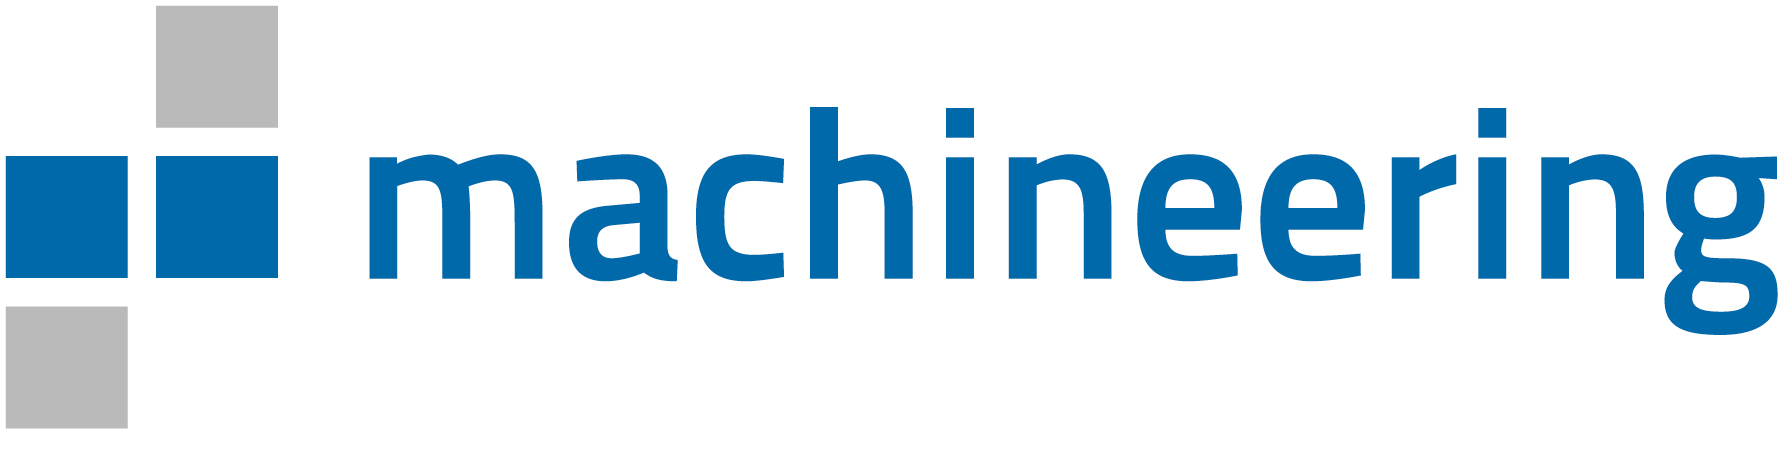 machineering GmbH & Co. KG